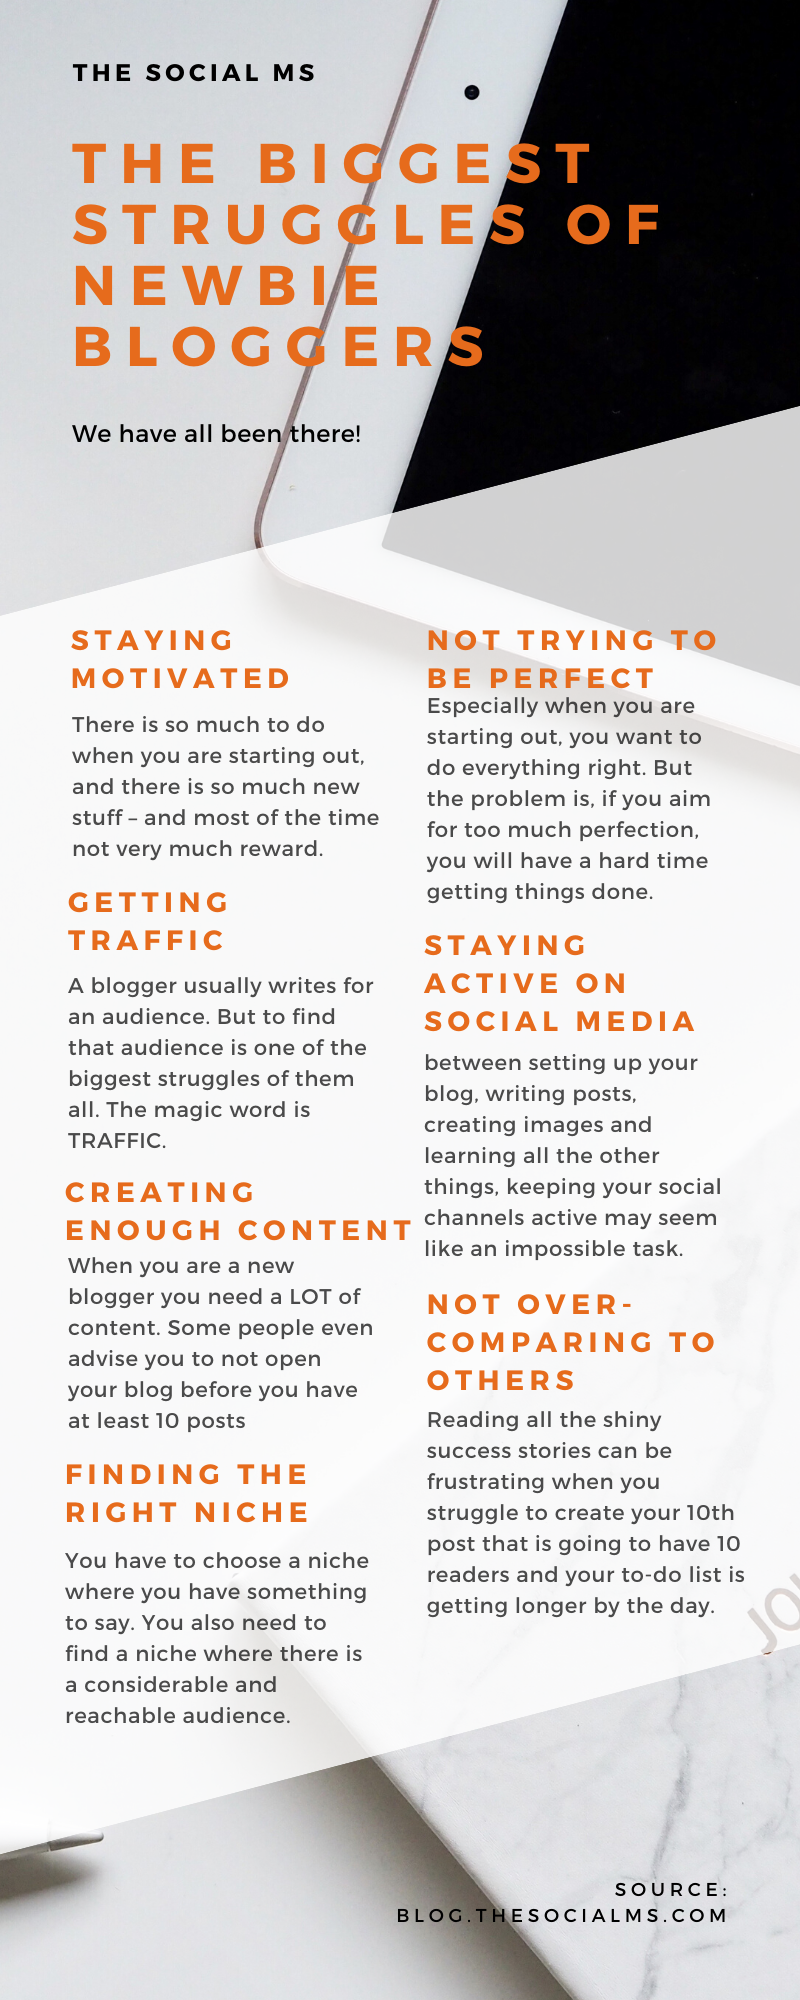 blogging is a struggle when you are starting out. You can make the struggle easier, or conquer them more quickly if you come prepared and learn fast. But struggle you will. #blogging101 #startablog #bloggingforbeginners #bloggingtips #bloggingsuccess